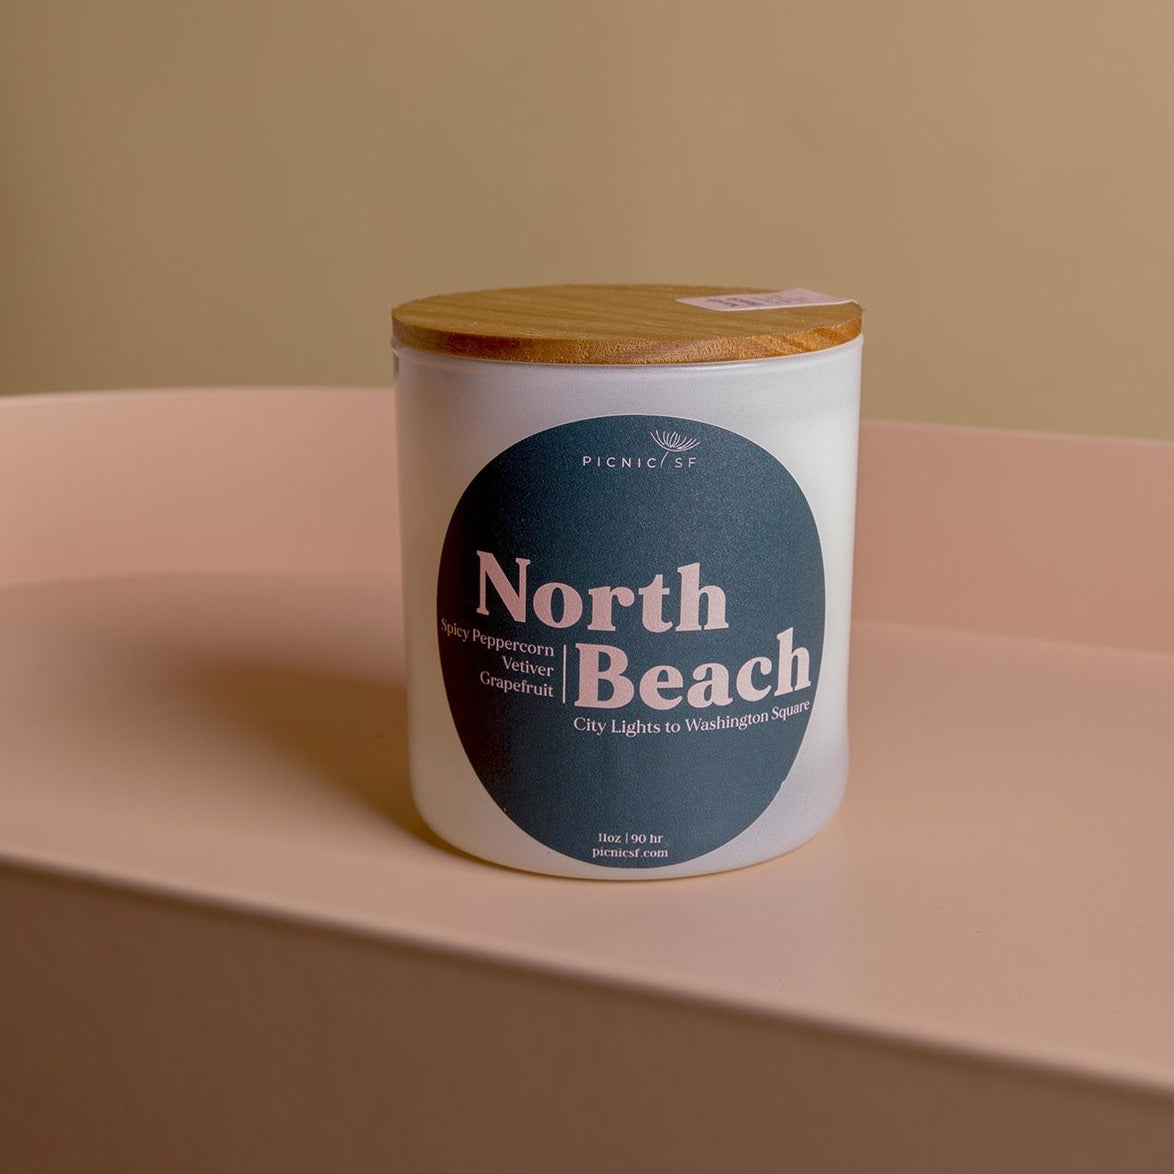 North Beach candle a Picnic exclusive San Francisco candle is available at Picnic SF.